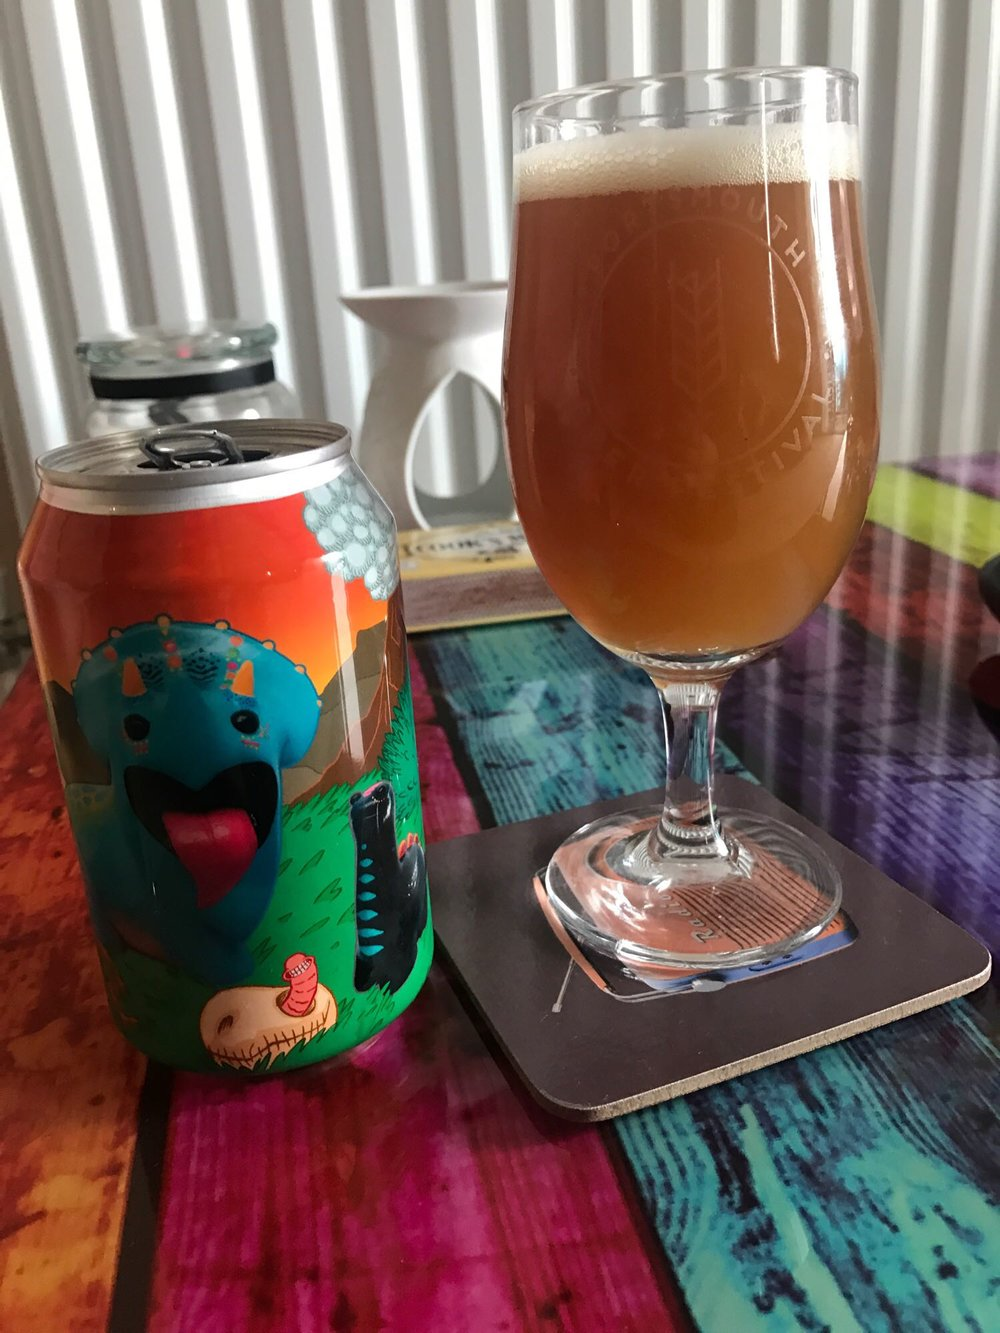 JURASSIX -  Double IPA 8%  // Staggeringly Good - This month's Drunk In… has a decidedly Pompey feel so far as my second choice this month comes from another south coast brewery in Jurassix from Staggeringly Good. Brand did a comprehensive write-up of the launch event of this beer and, being a gent, hooked me up with one of the beers from his six-pack. It was worth the wait as this was cracking. Probably the most resinous DIPA I've had, Brand's comparison to the amber fossilized tree resin from Jurassic Park was absolutely spot on. Look at that colour! Slightly envious he has three cans of this excellent beer left. The jammy bastard.